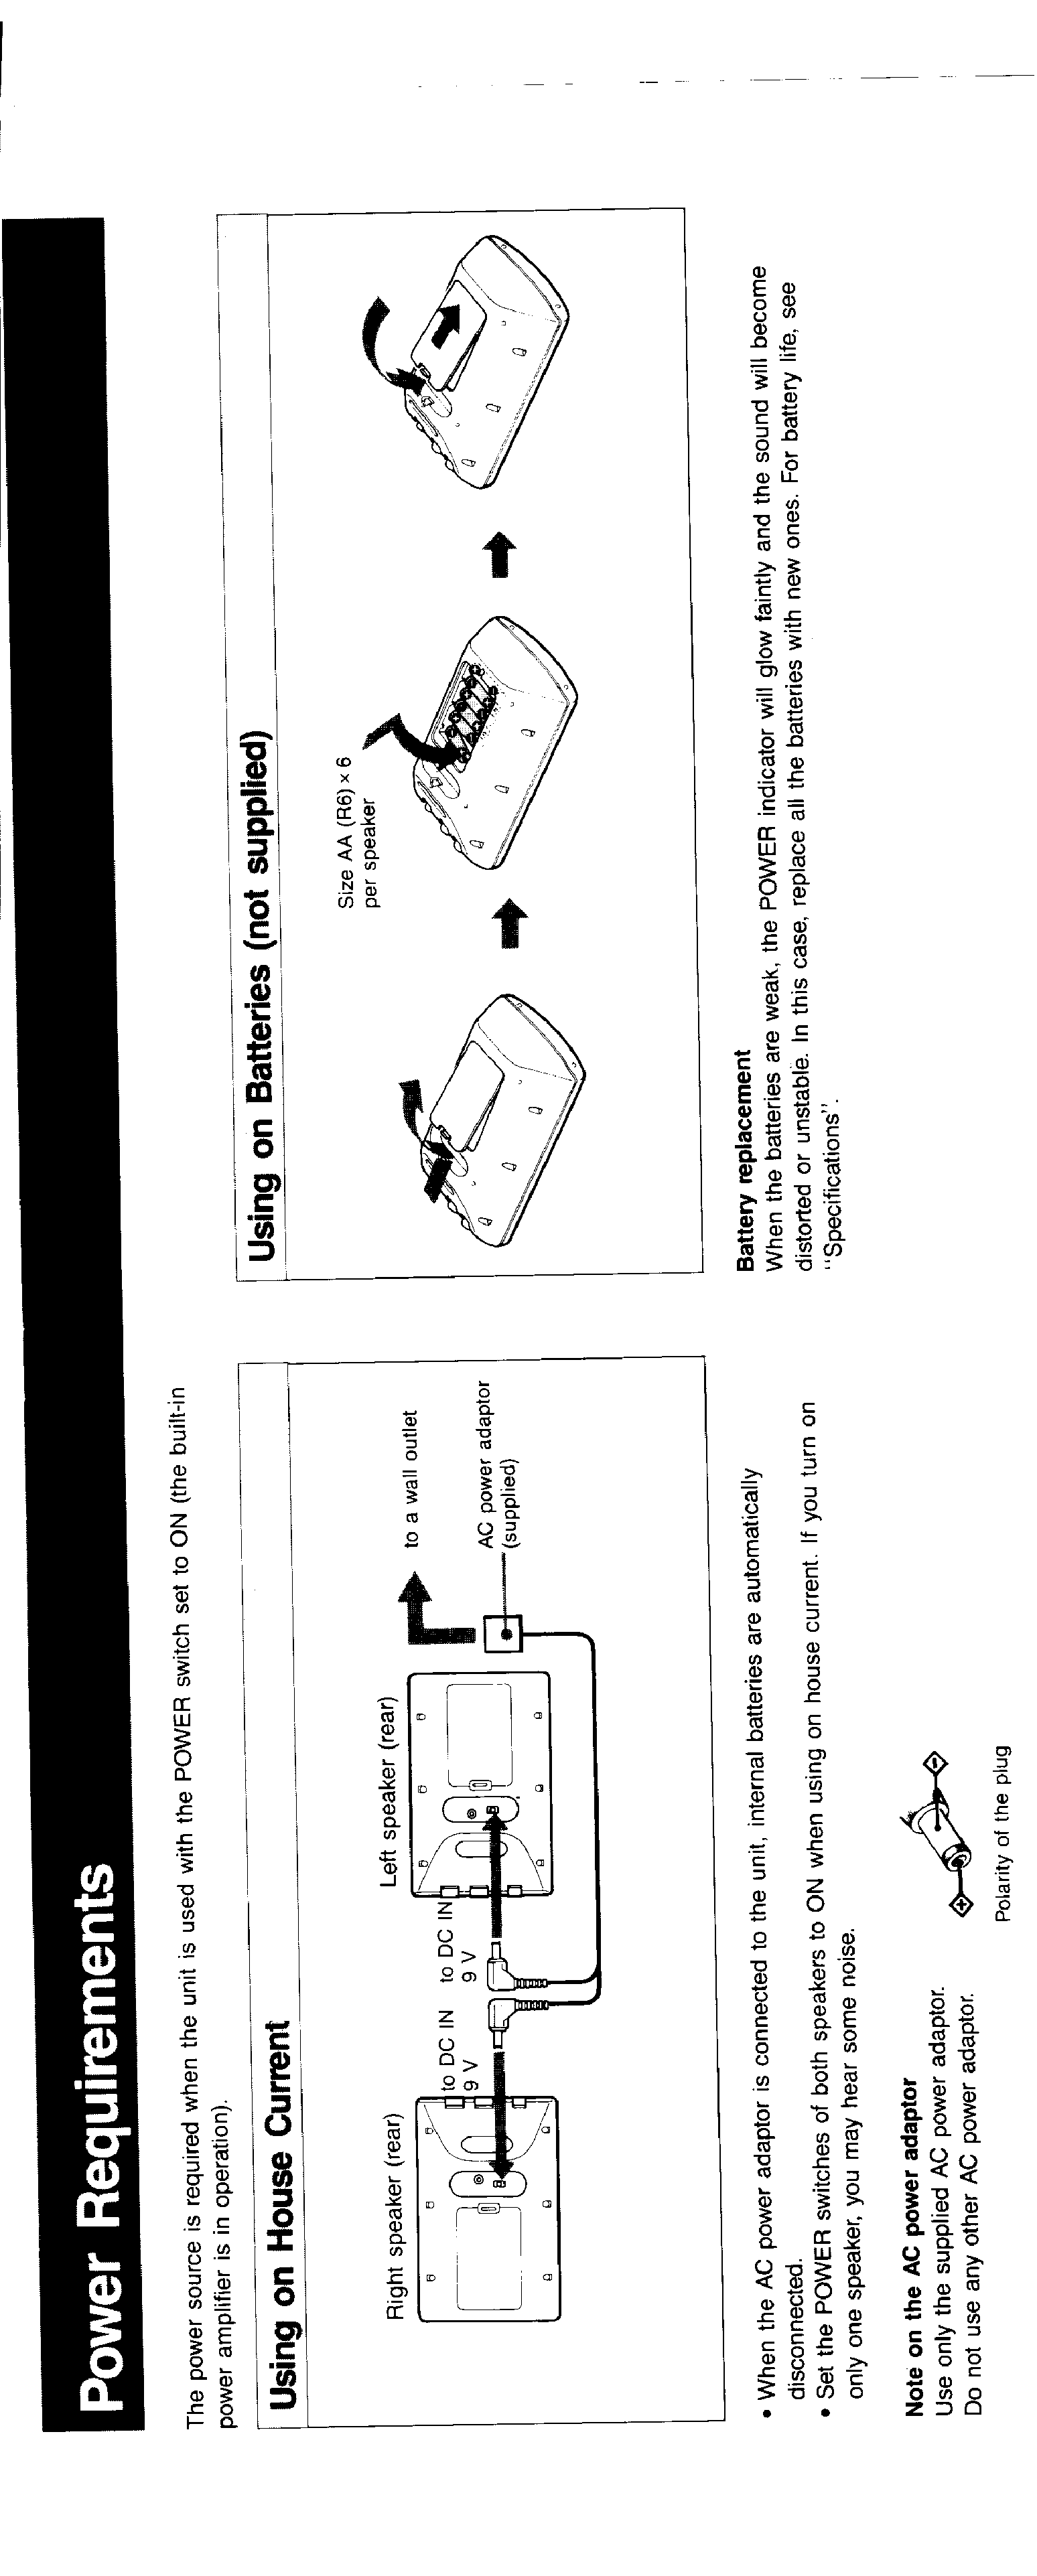 Wiring Diagram Sony Car Stereo Only Schematic